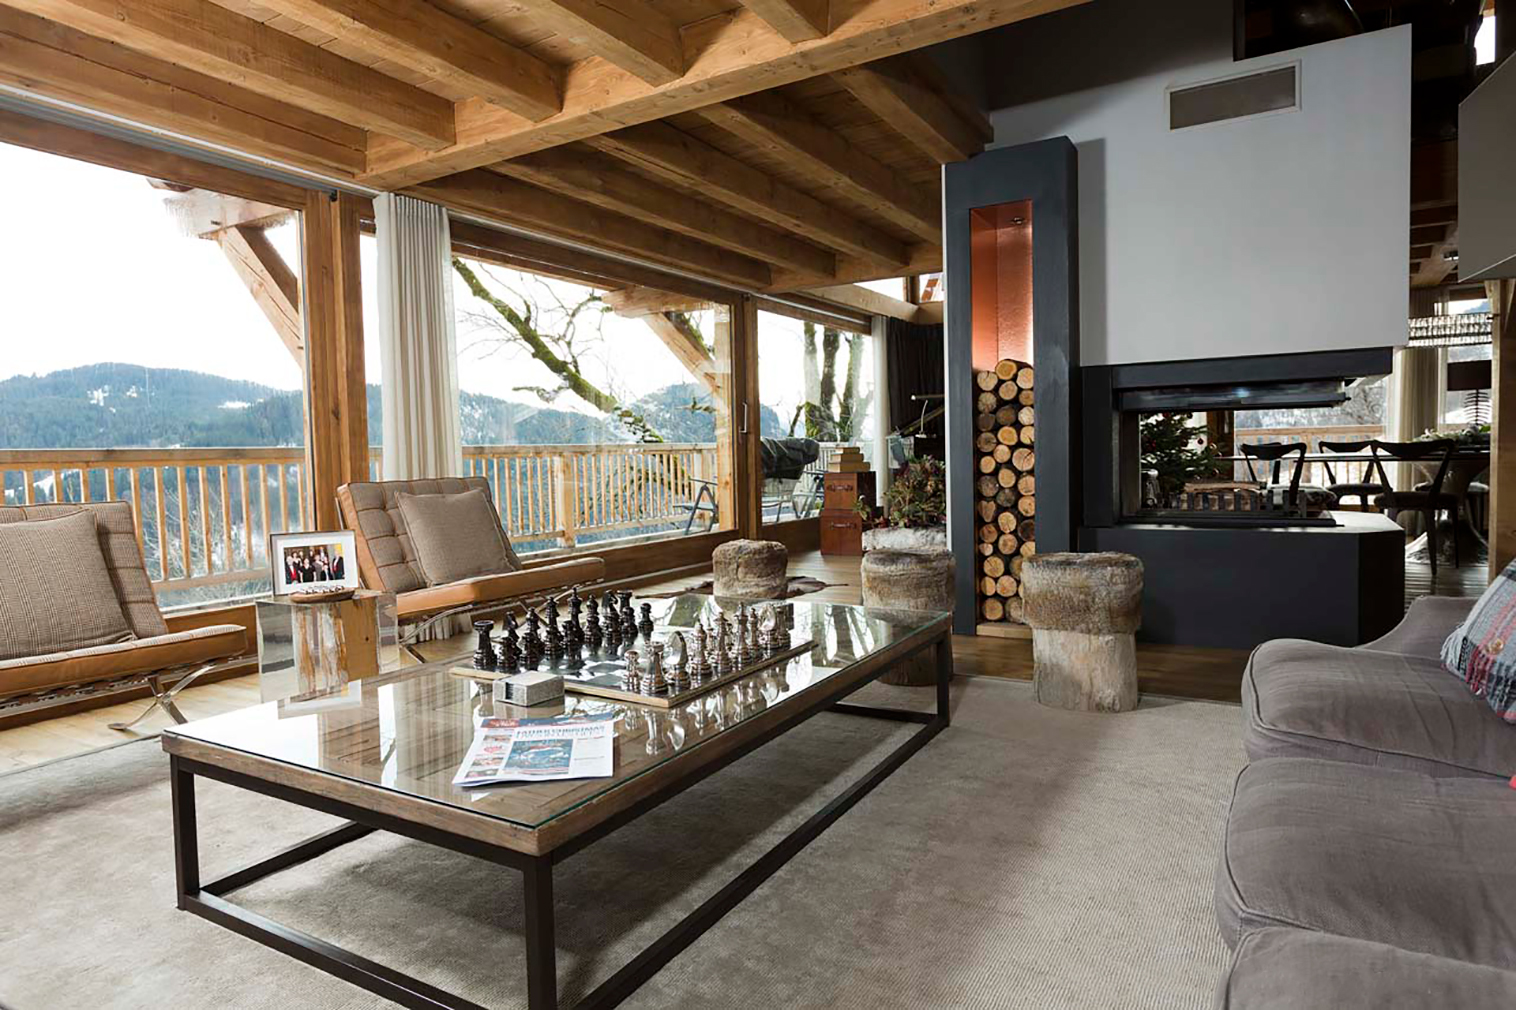 8 striking ski chalets for sale in europe right now the spaces. Black Bedroom Furniture Sets. Home Design Ideas